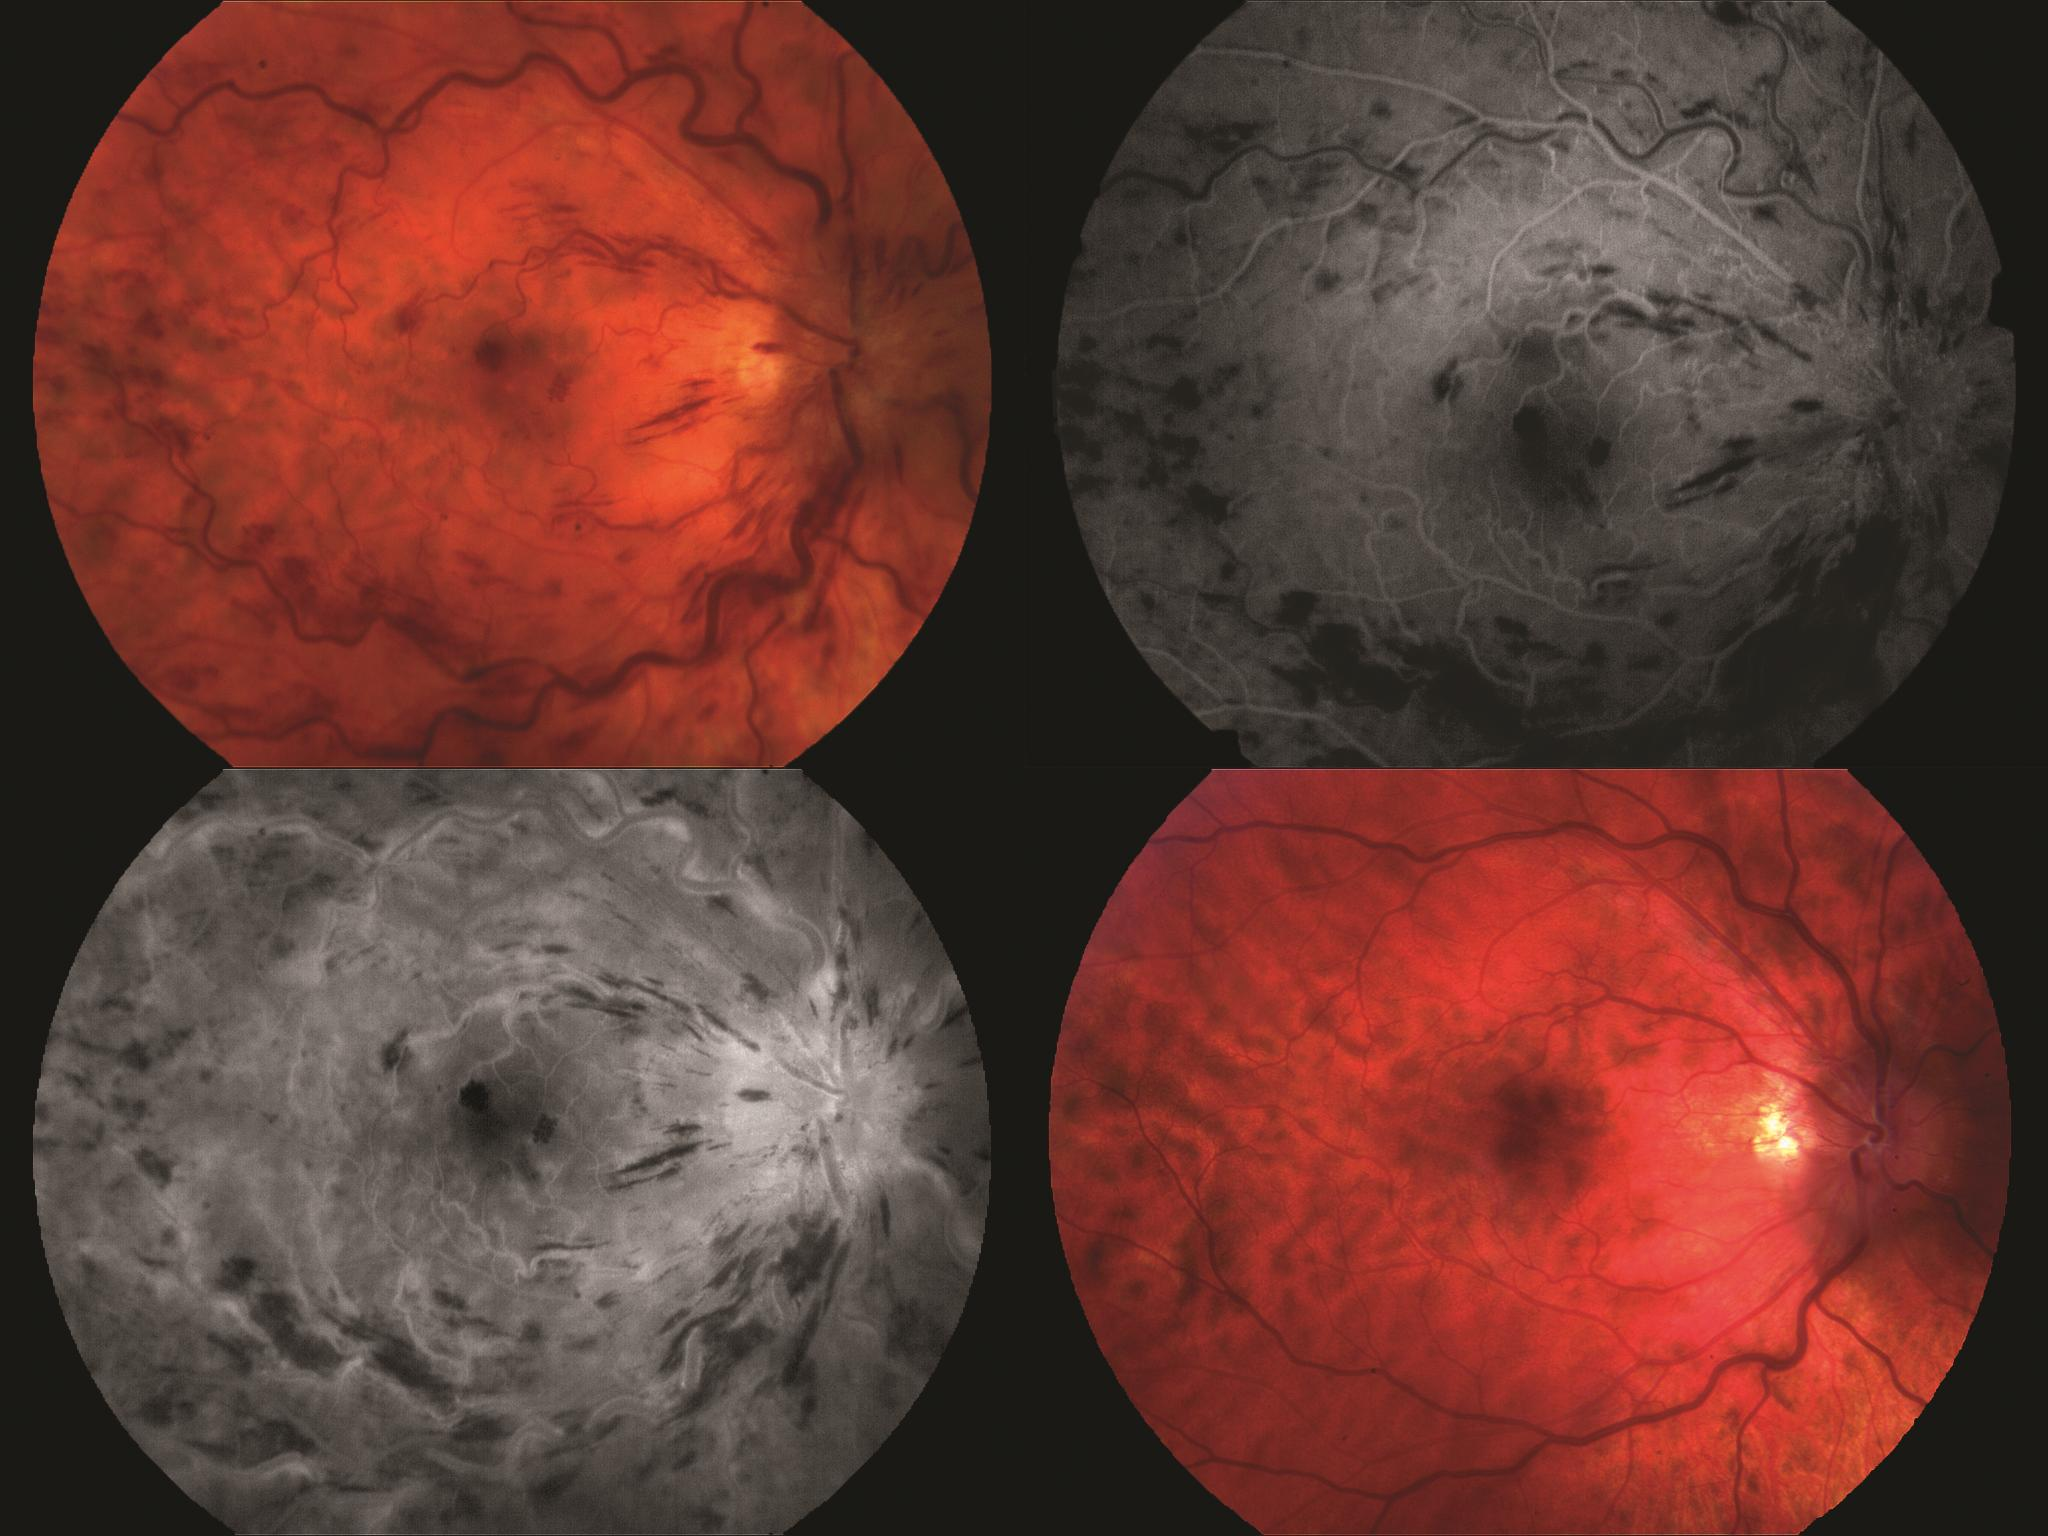 Central retinal vein occlusion in a 31-year-old man with 20/60 visual acuity in the right eye. There is tortuosity and significant disc edema but only moderate intraretinal hemorrhaging. Significant venous delay at 43 seconds into fluorescein angiography (top right). Late image (bottom left) showing staining of the disc and veins. There is also some mild leakage within the macula. The same eye 17 months later (bottom right) with resolution of hemorrhaging but the disc still appears mildly edematous. Visual acuity was 20/25.